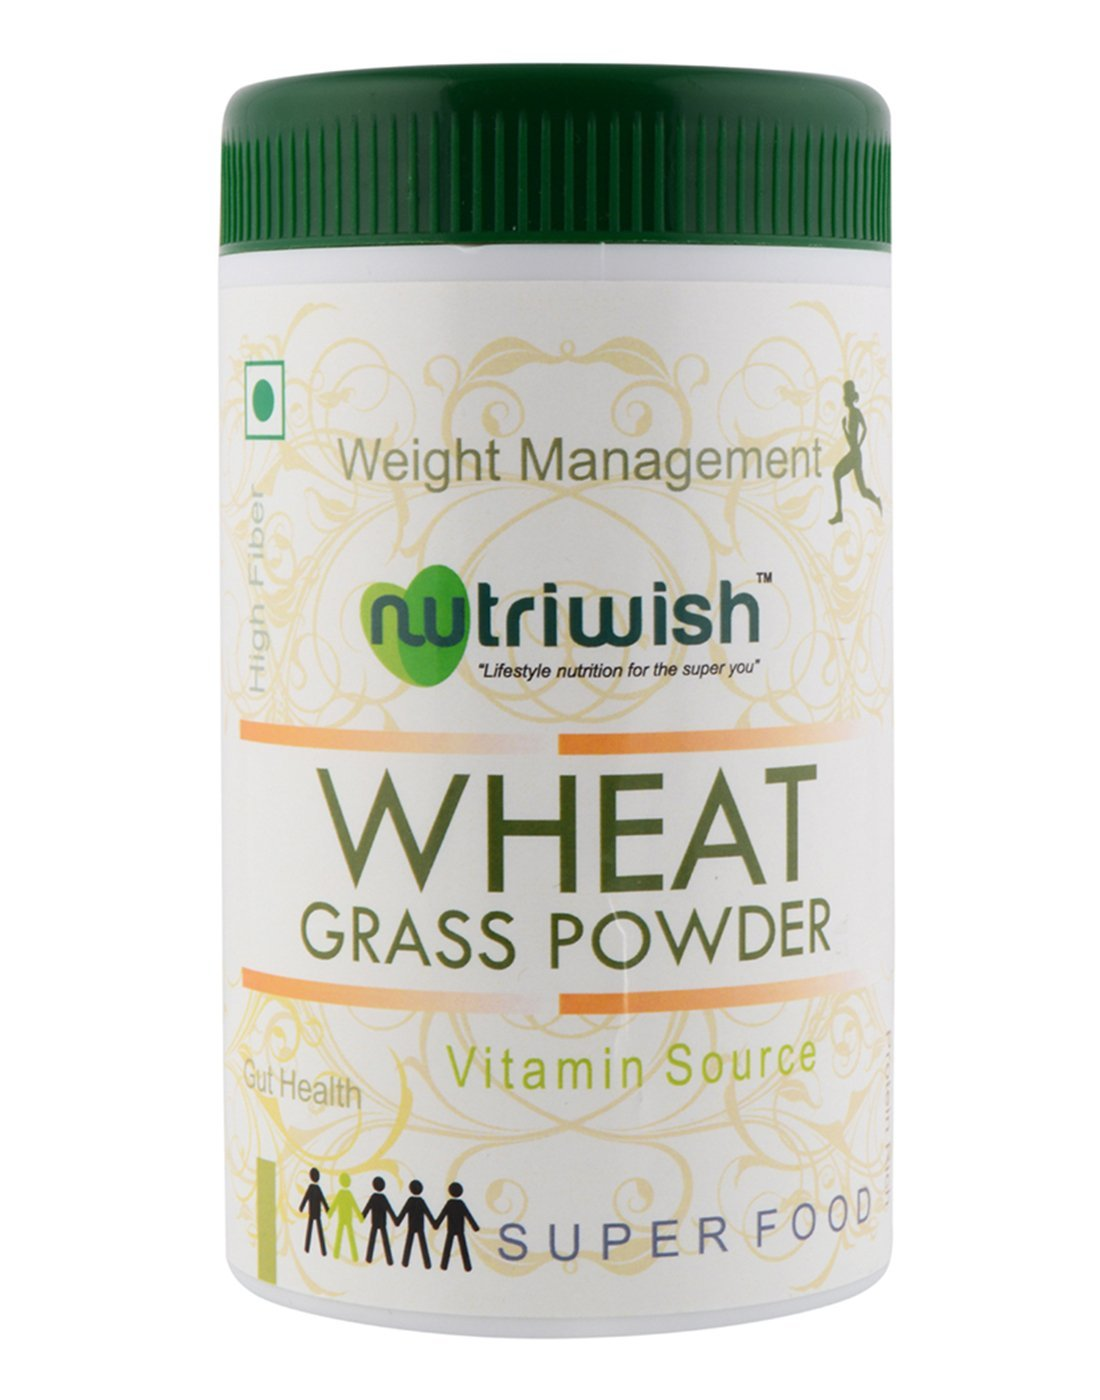 Nutriwish Wheat Grass Powder 100 gms (Reusable Packaging With Scoop) , Powerful Organic Superfood by Nutriwish